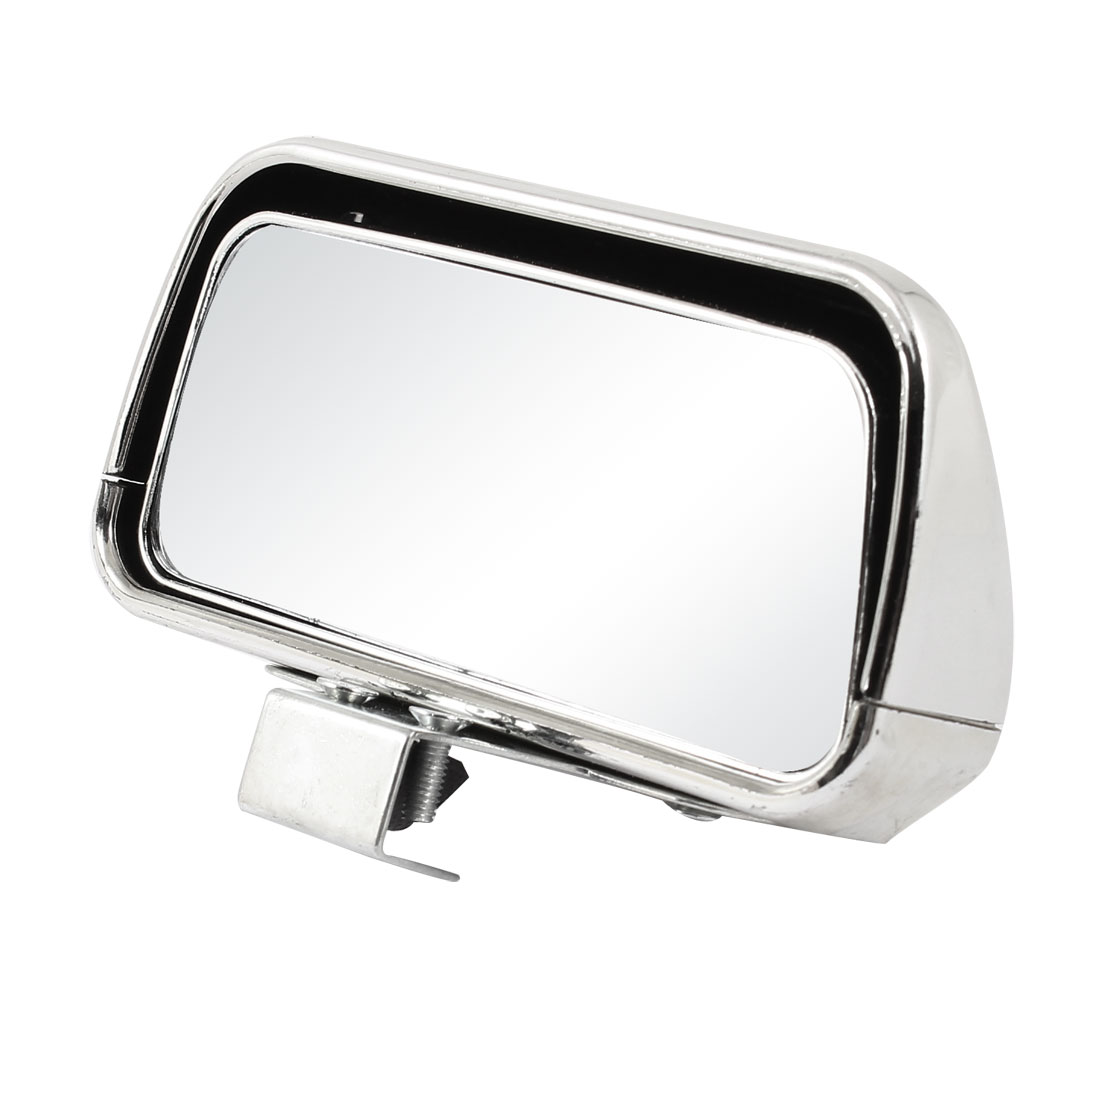 Auto Silver Tone Plastic Adjustable Angle Rectangle Shaped 60 Degree Adjust Wide Angle Rearview Blind Spot Mirror